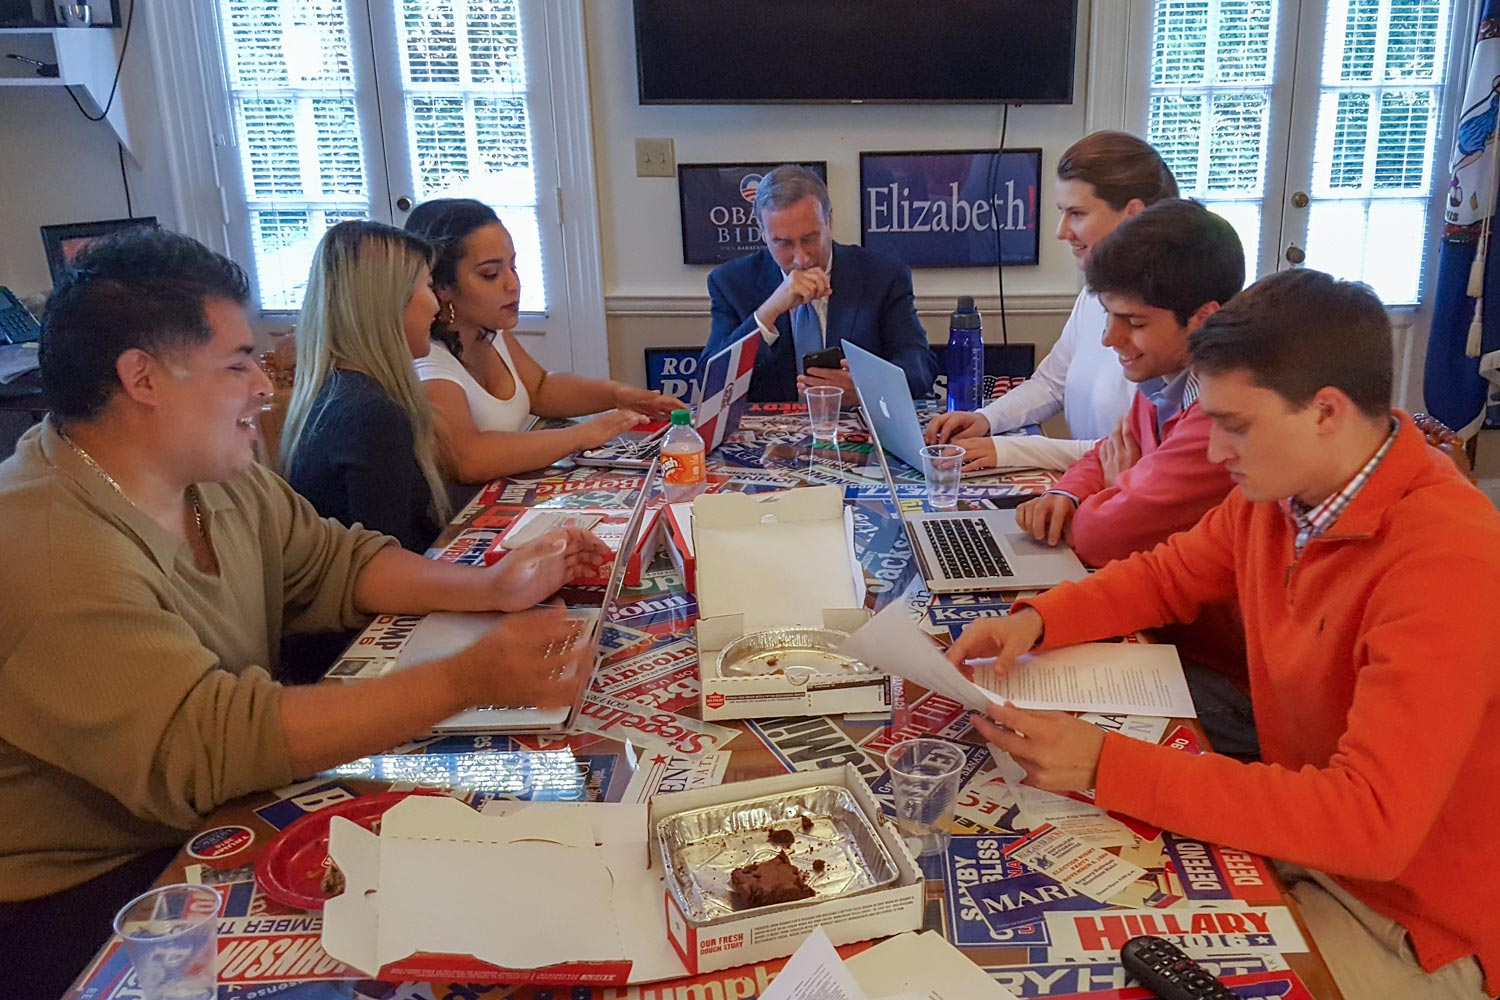 Fueled by pizza and brownies, Larry Sabato and his students pored over the newly released records well into the night.